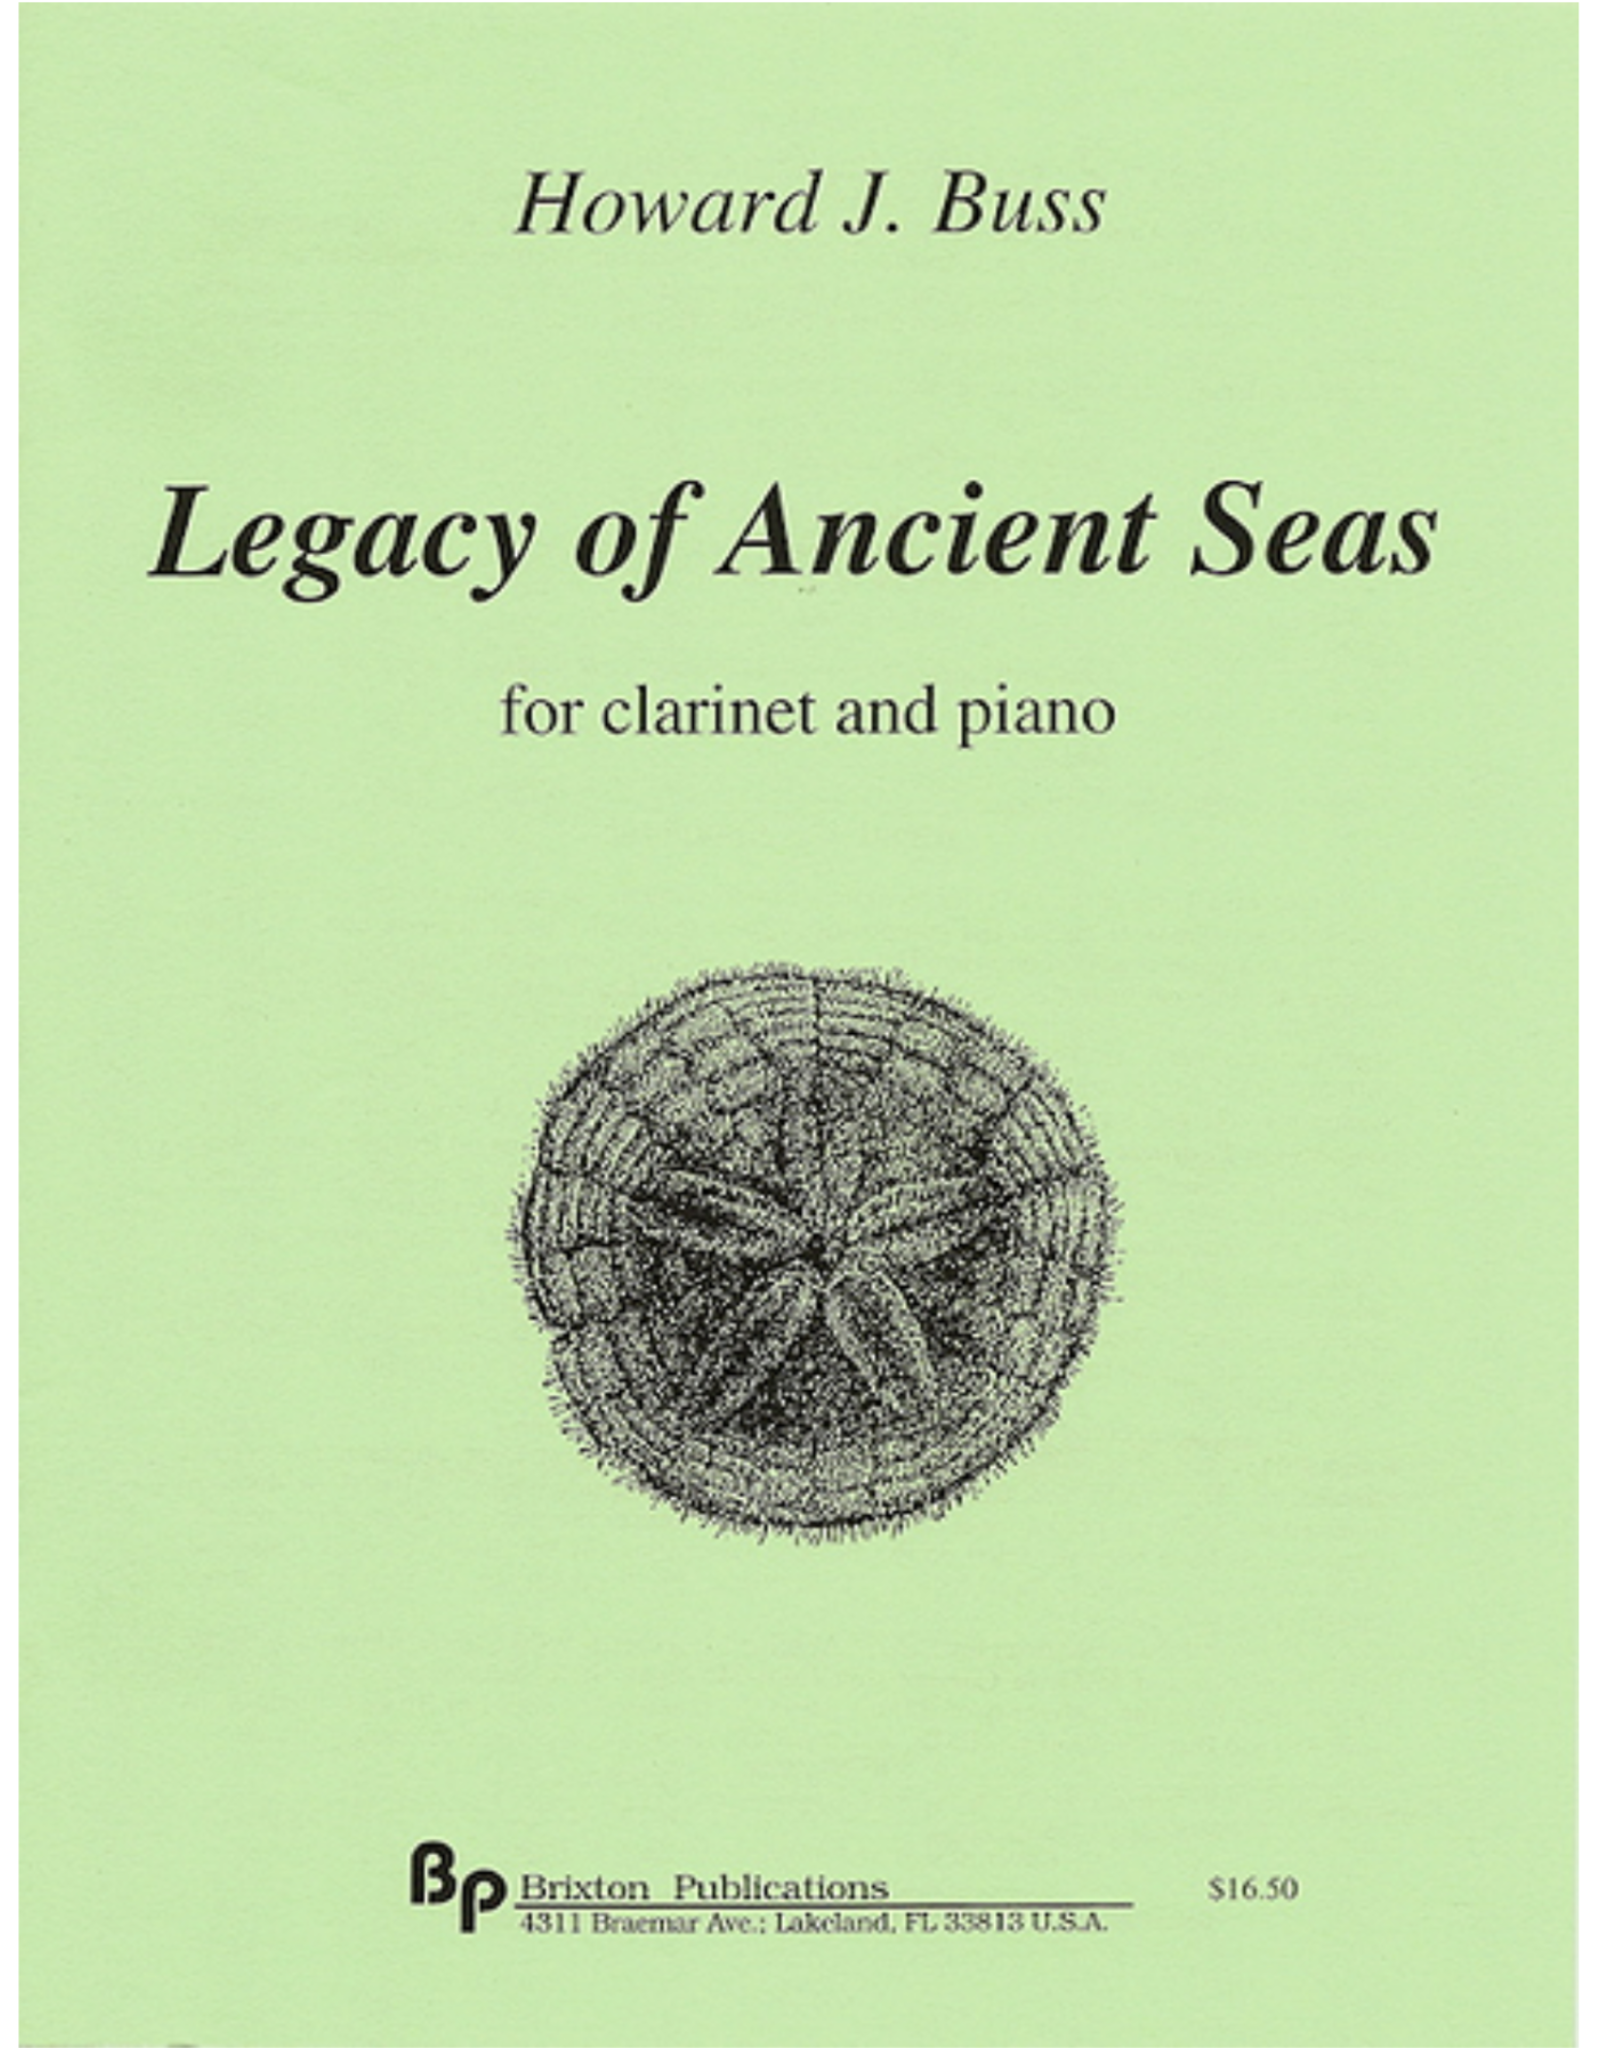 Generic Buss - Legacy of Ancient Seas Clarinet and Piano